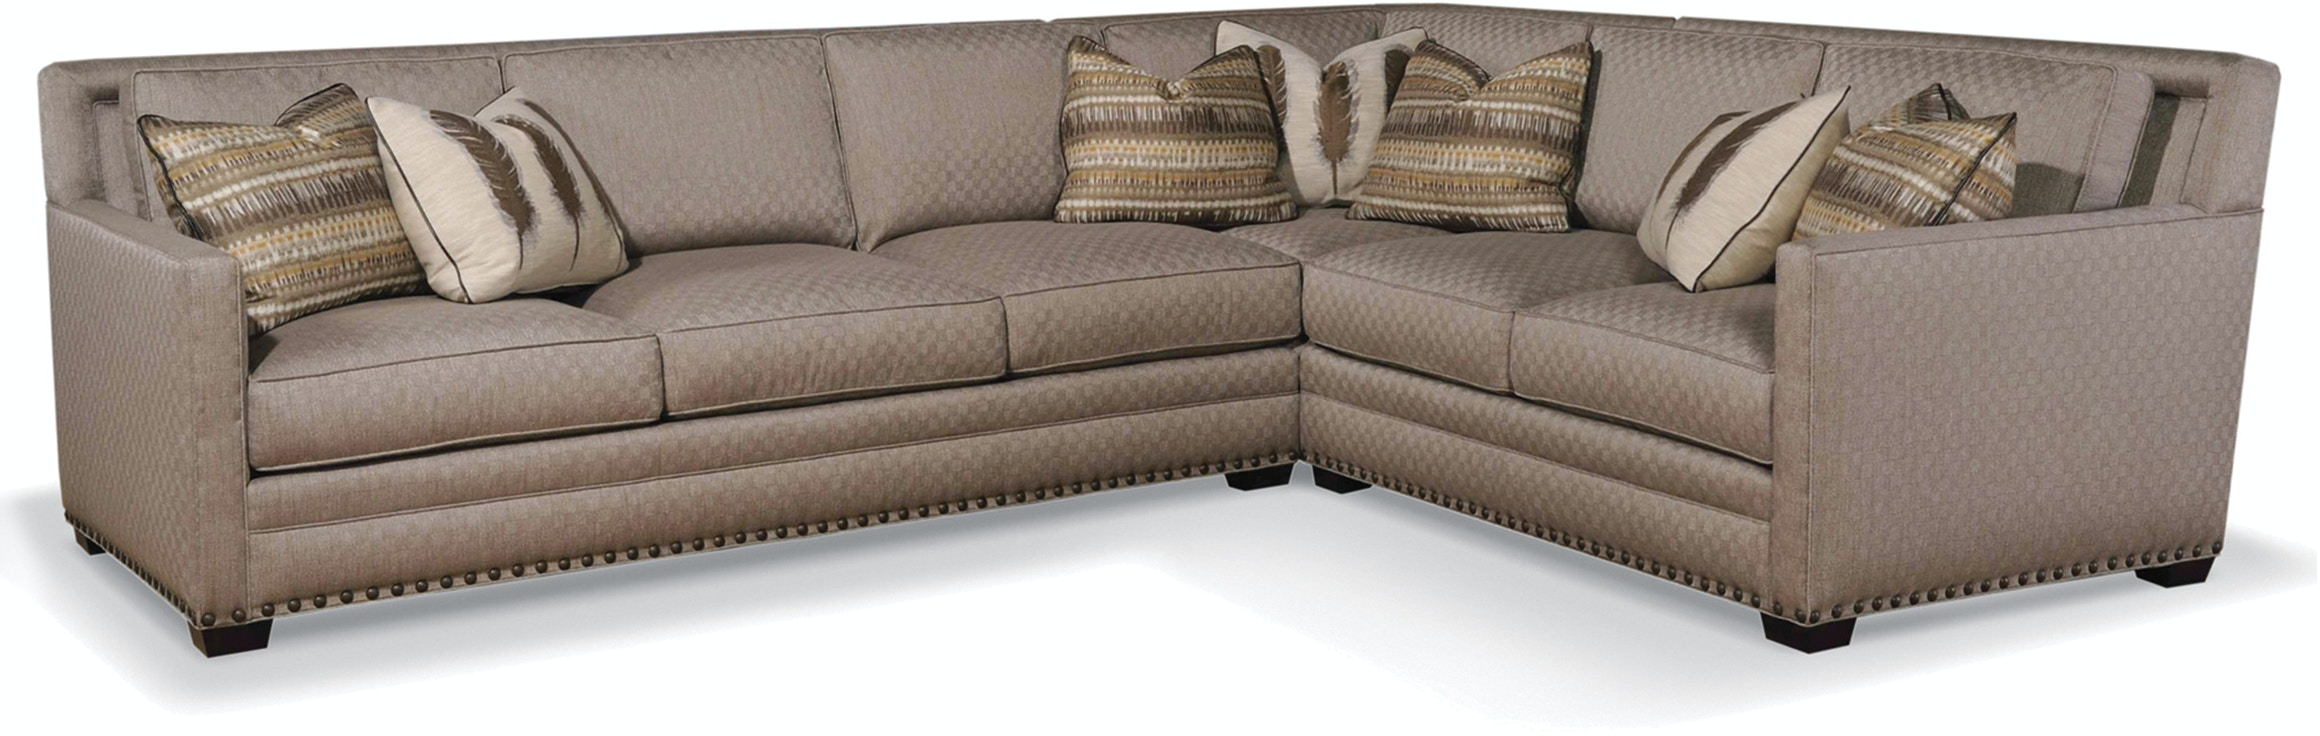 Taylor King Living Room Bradfield Sectional 3512 Sectional  : 3512208 14 201410 46 52pm1hr from www.reddoorinteriors.com size 1024 x 768 jpeg 39kB